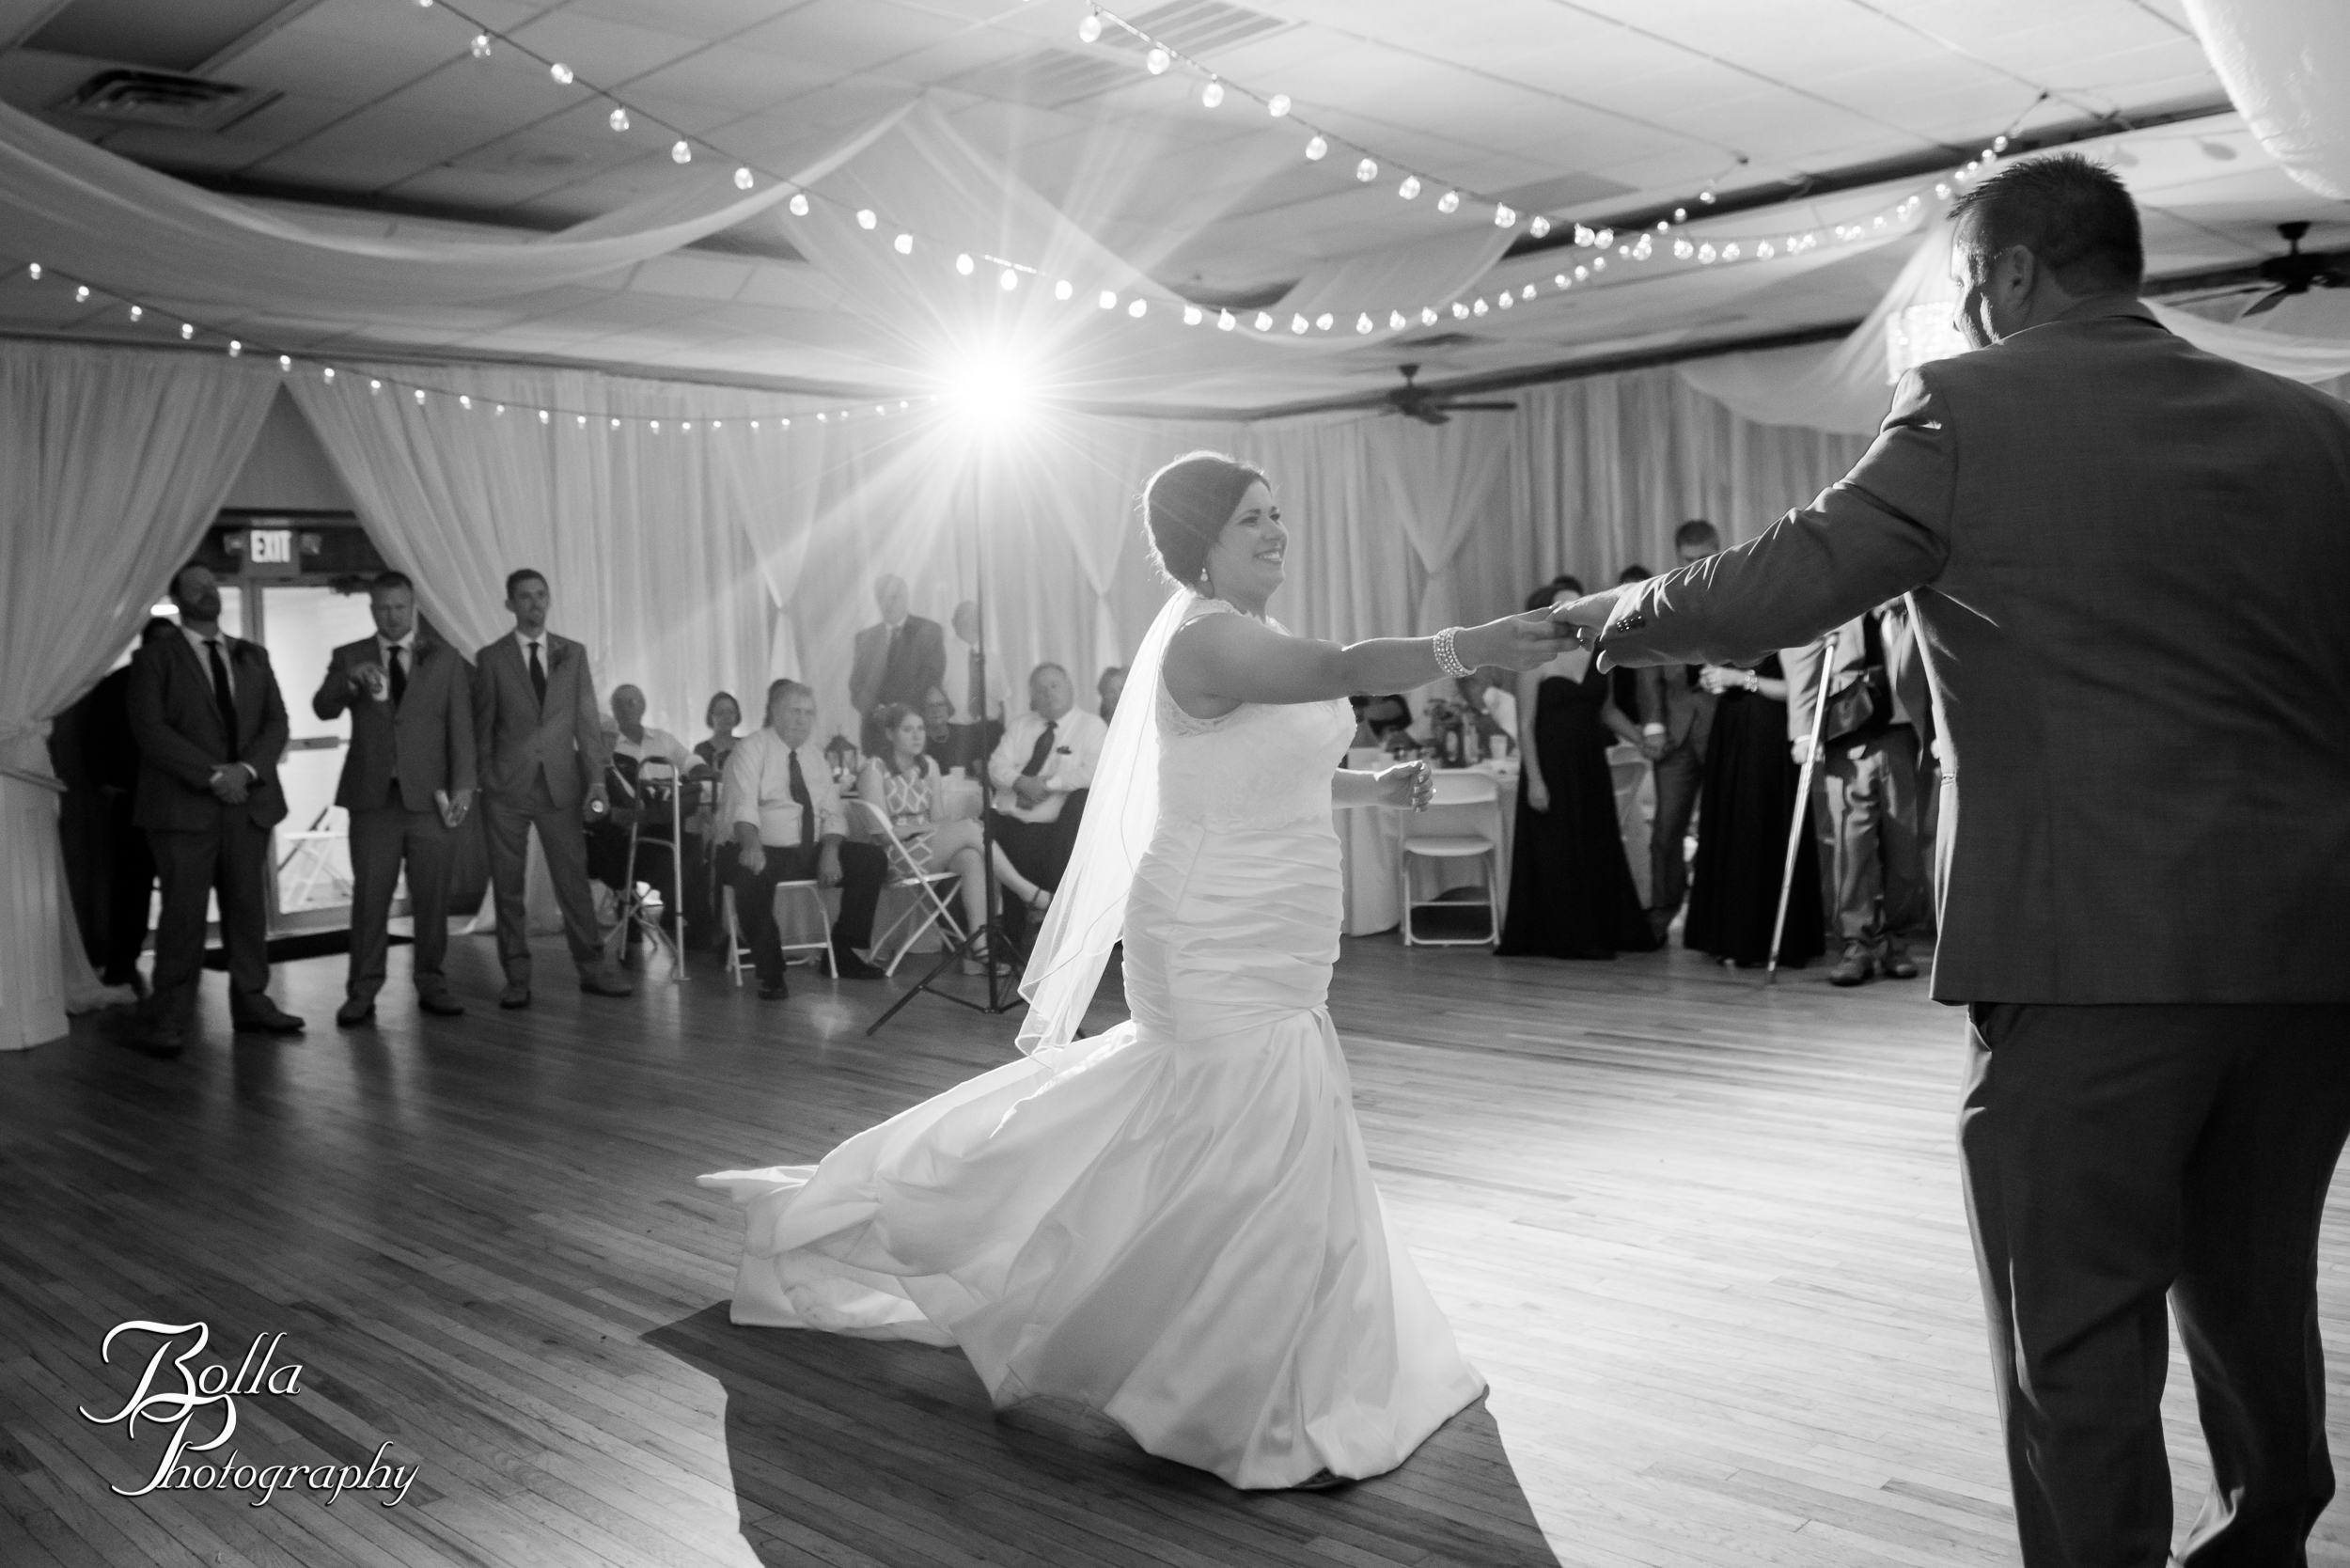 Bolla_photography_edwardsville_wedding_photographer_st_louis_weddings_Heinzmann-0427.jpg